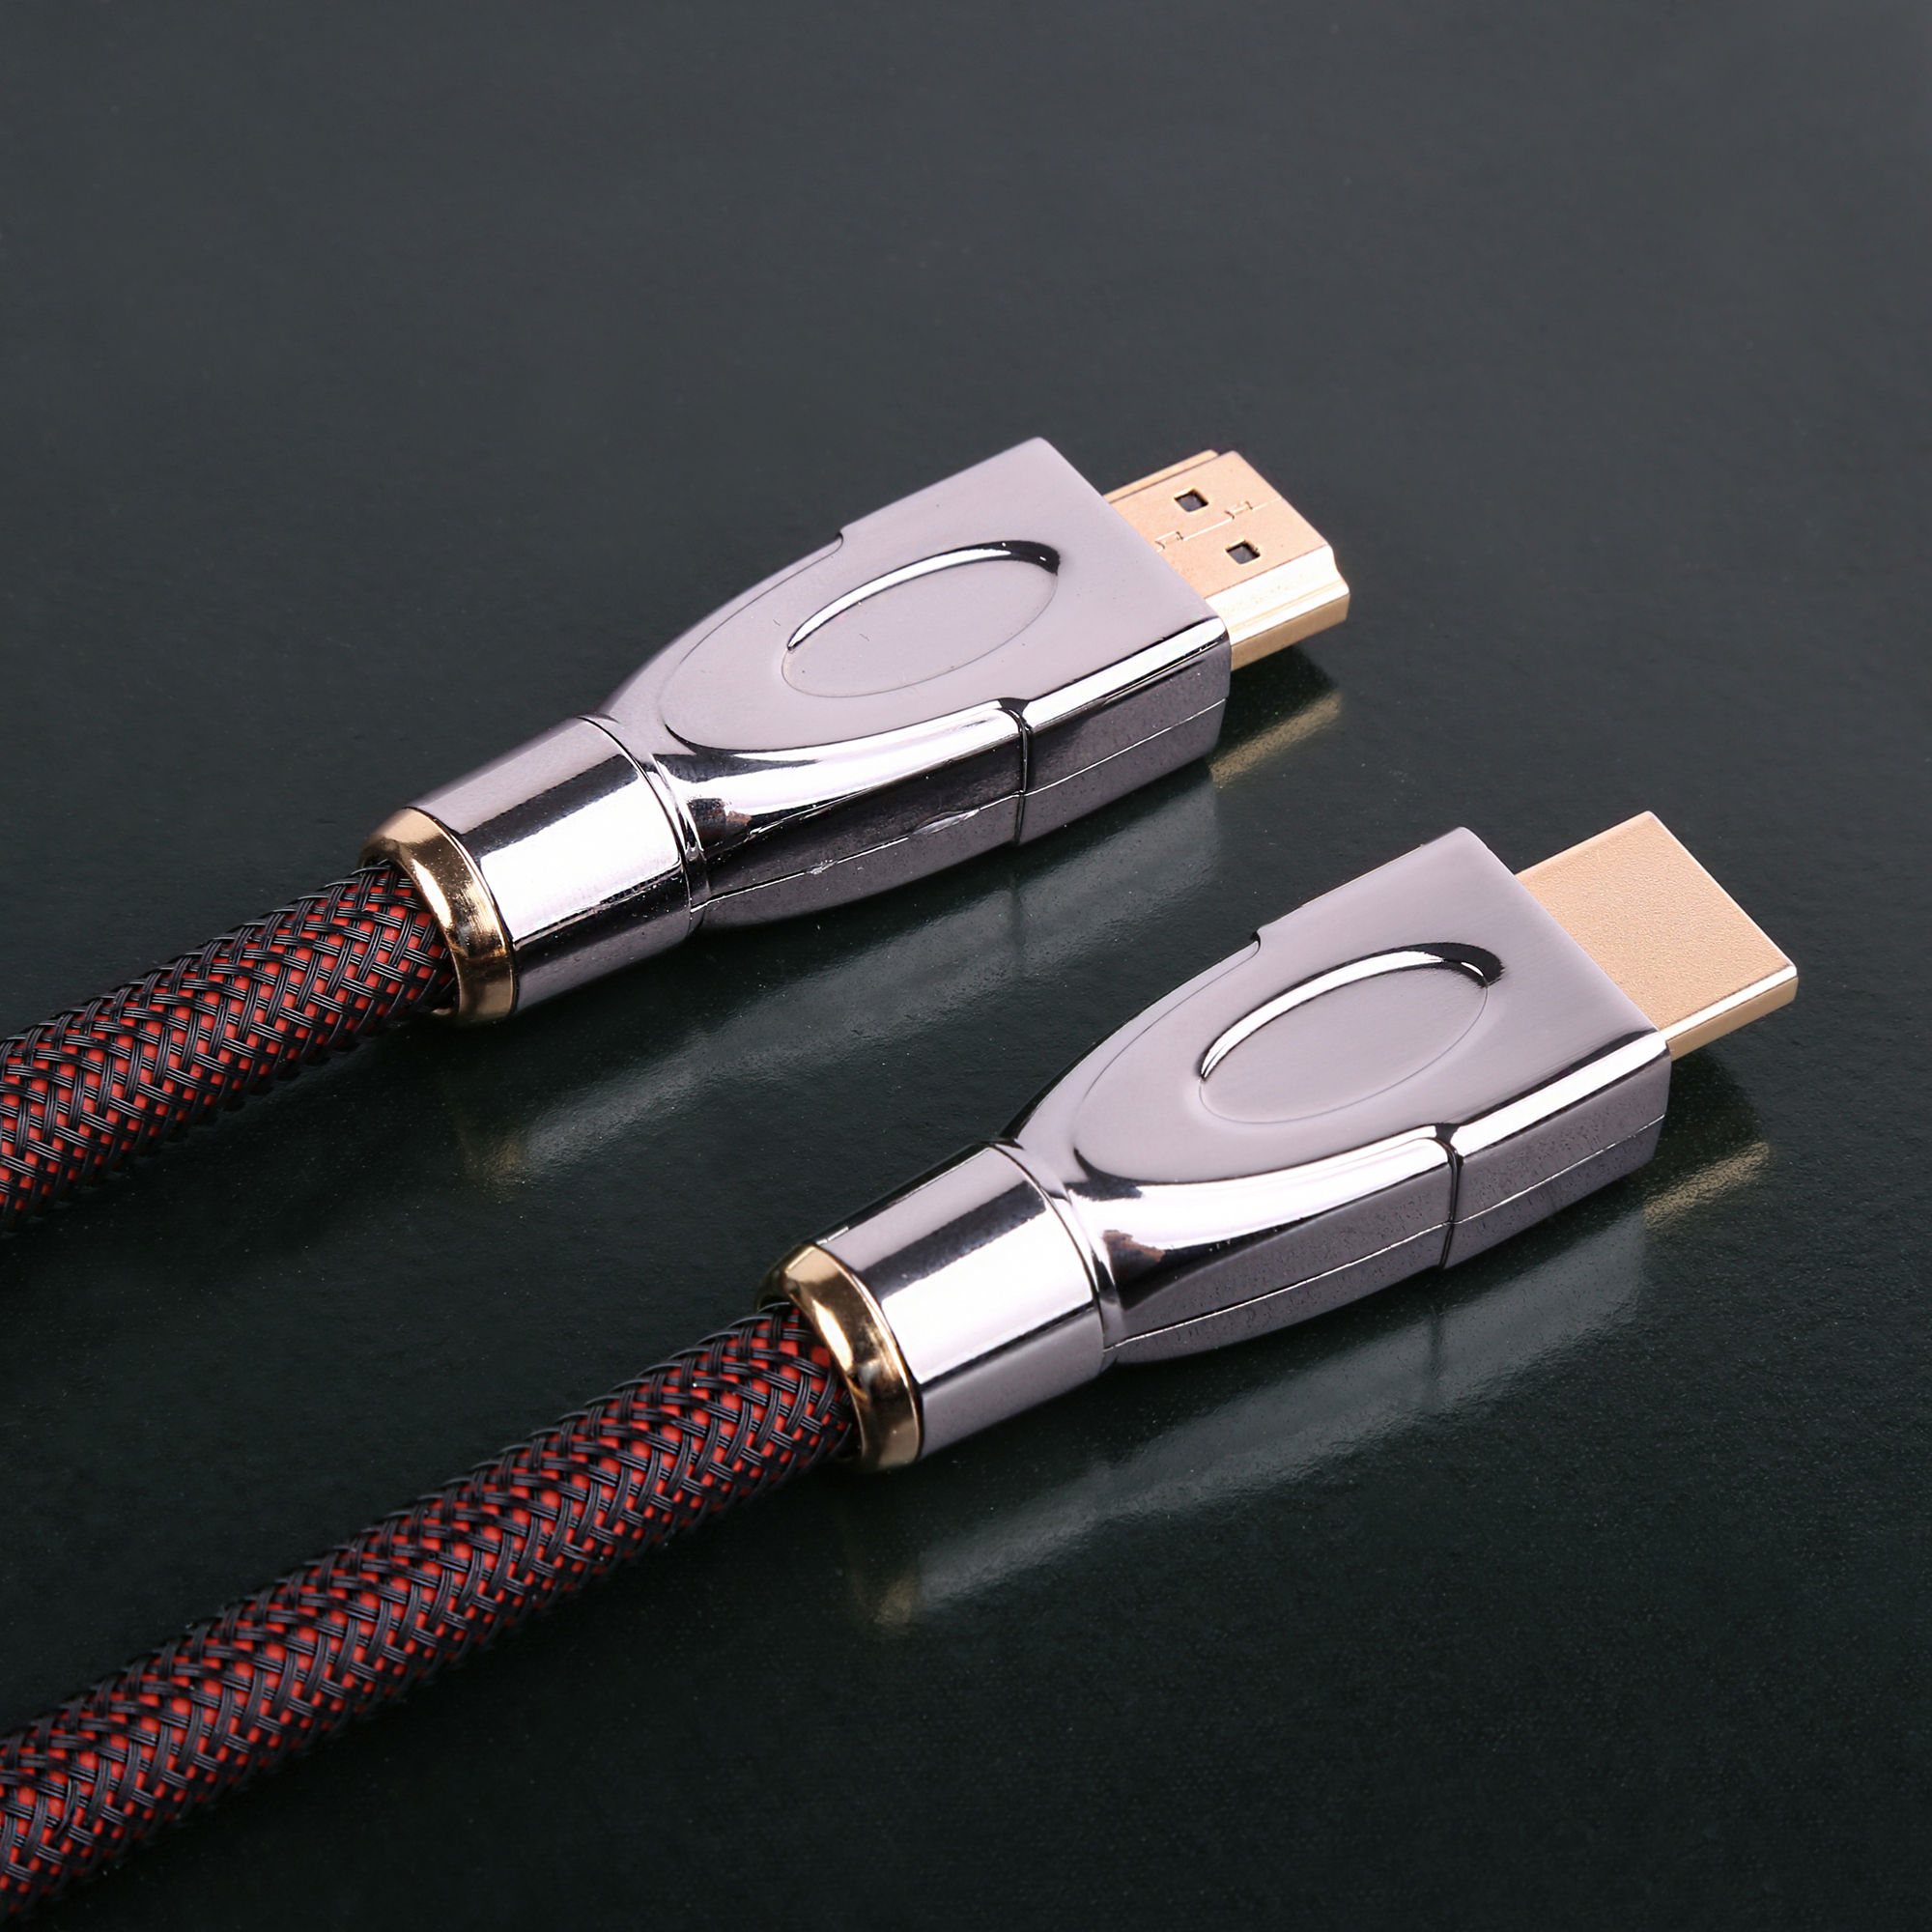 HD-300 Pure Silver HDMI I2S IIS Cable HIFI HI-END Audiophile Audio Cable Wire Soundaware RED CORE Player LKS HOLO MATRIX GUSTARD(China)